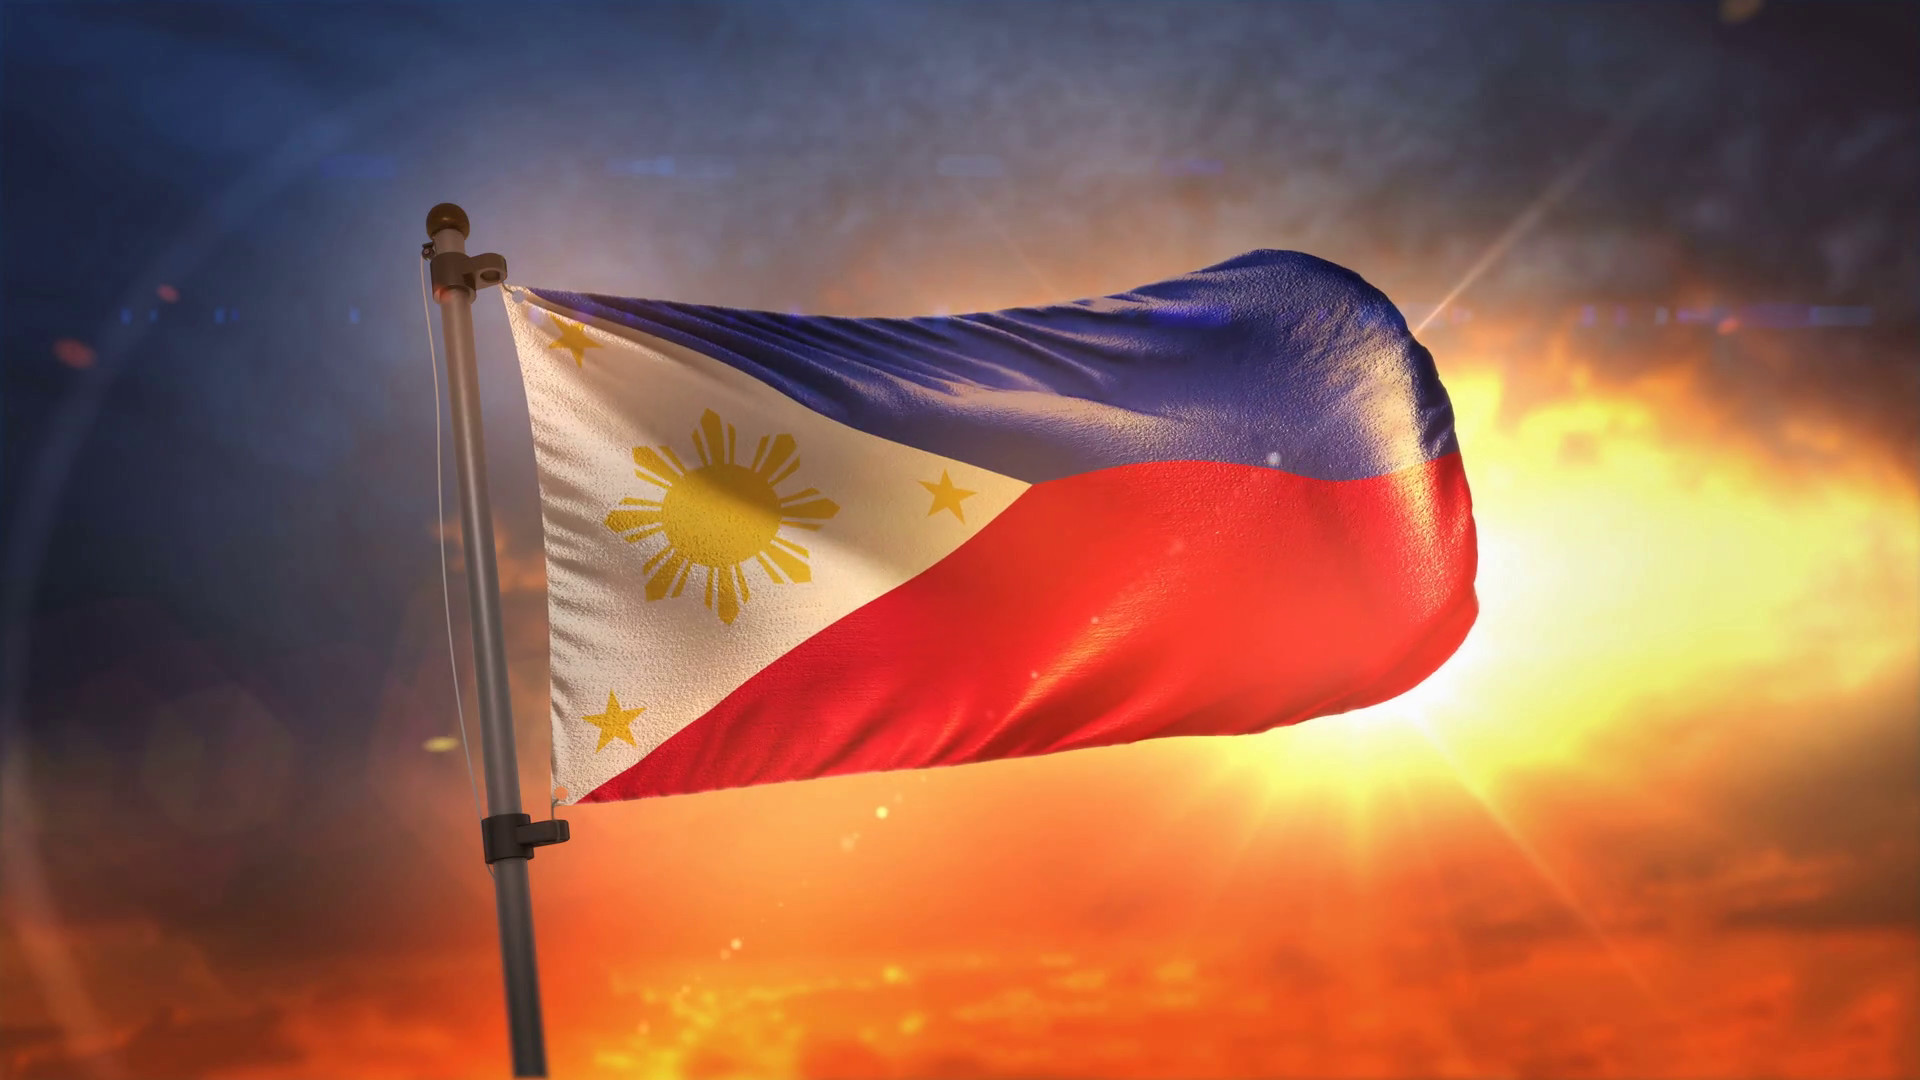 Res: 1920x1080, Philippines Flag Backlit At Beautiful Sunrise Loop Slow Motion 4K Motion  Background - Videoblocks